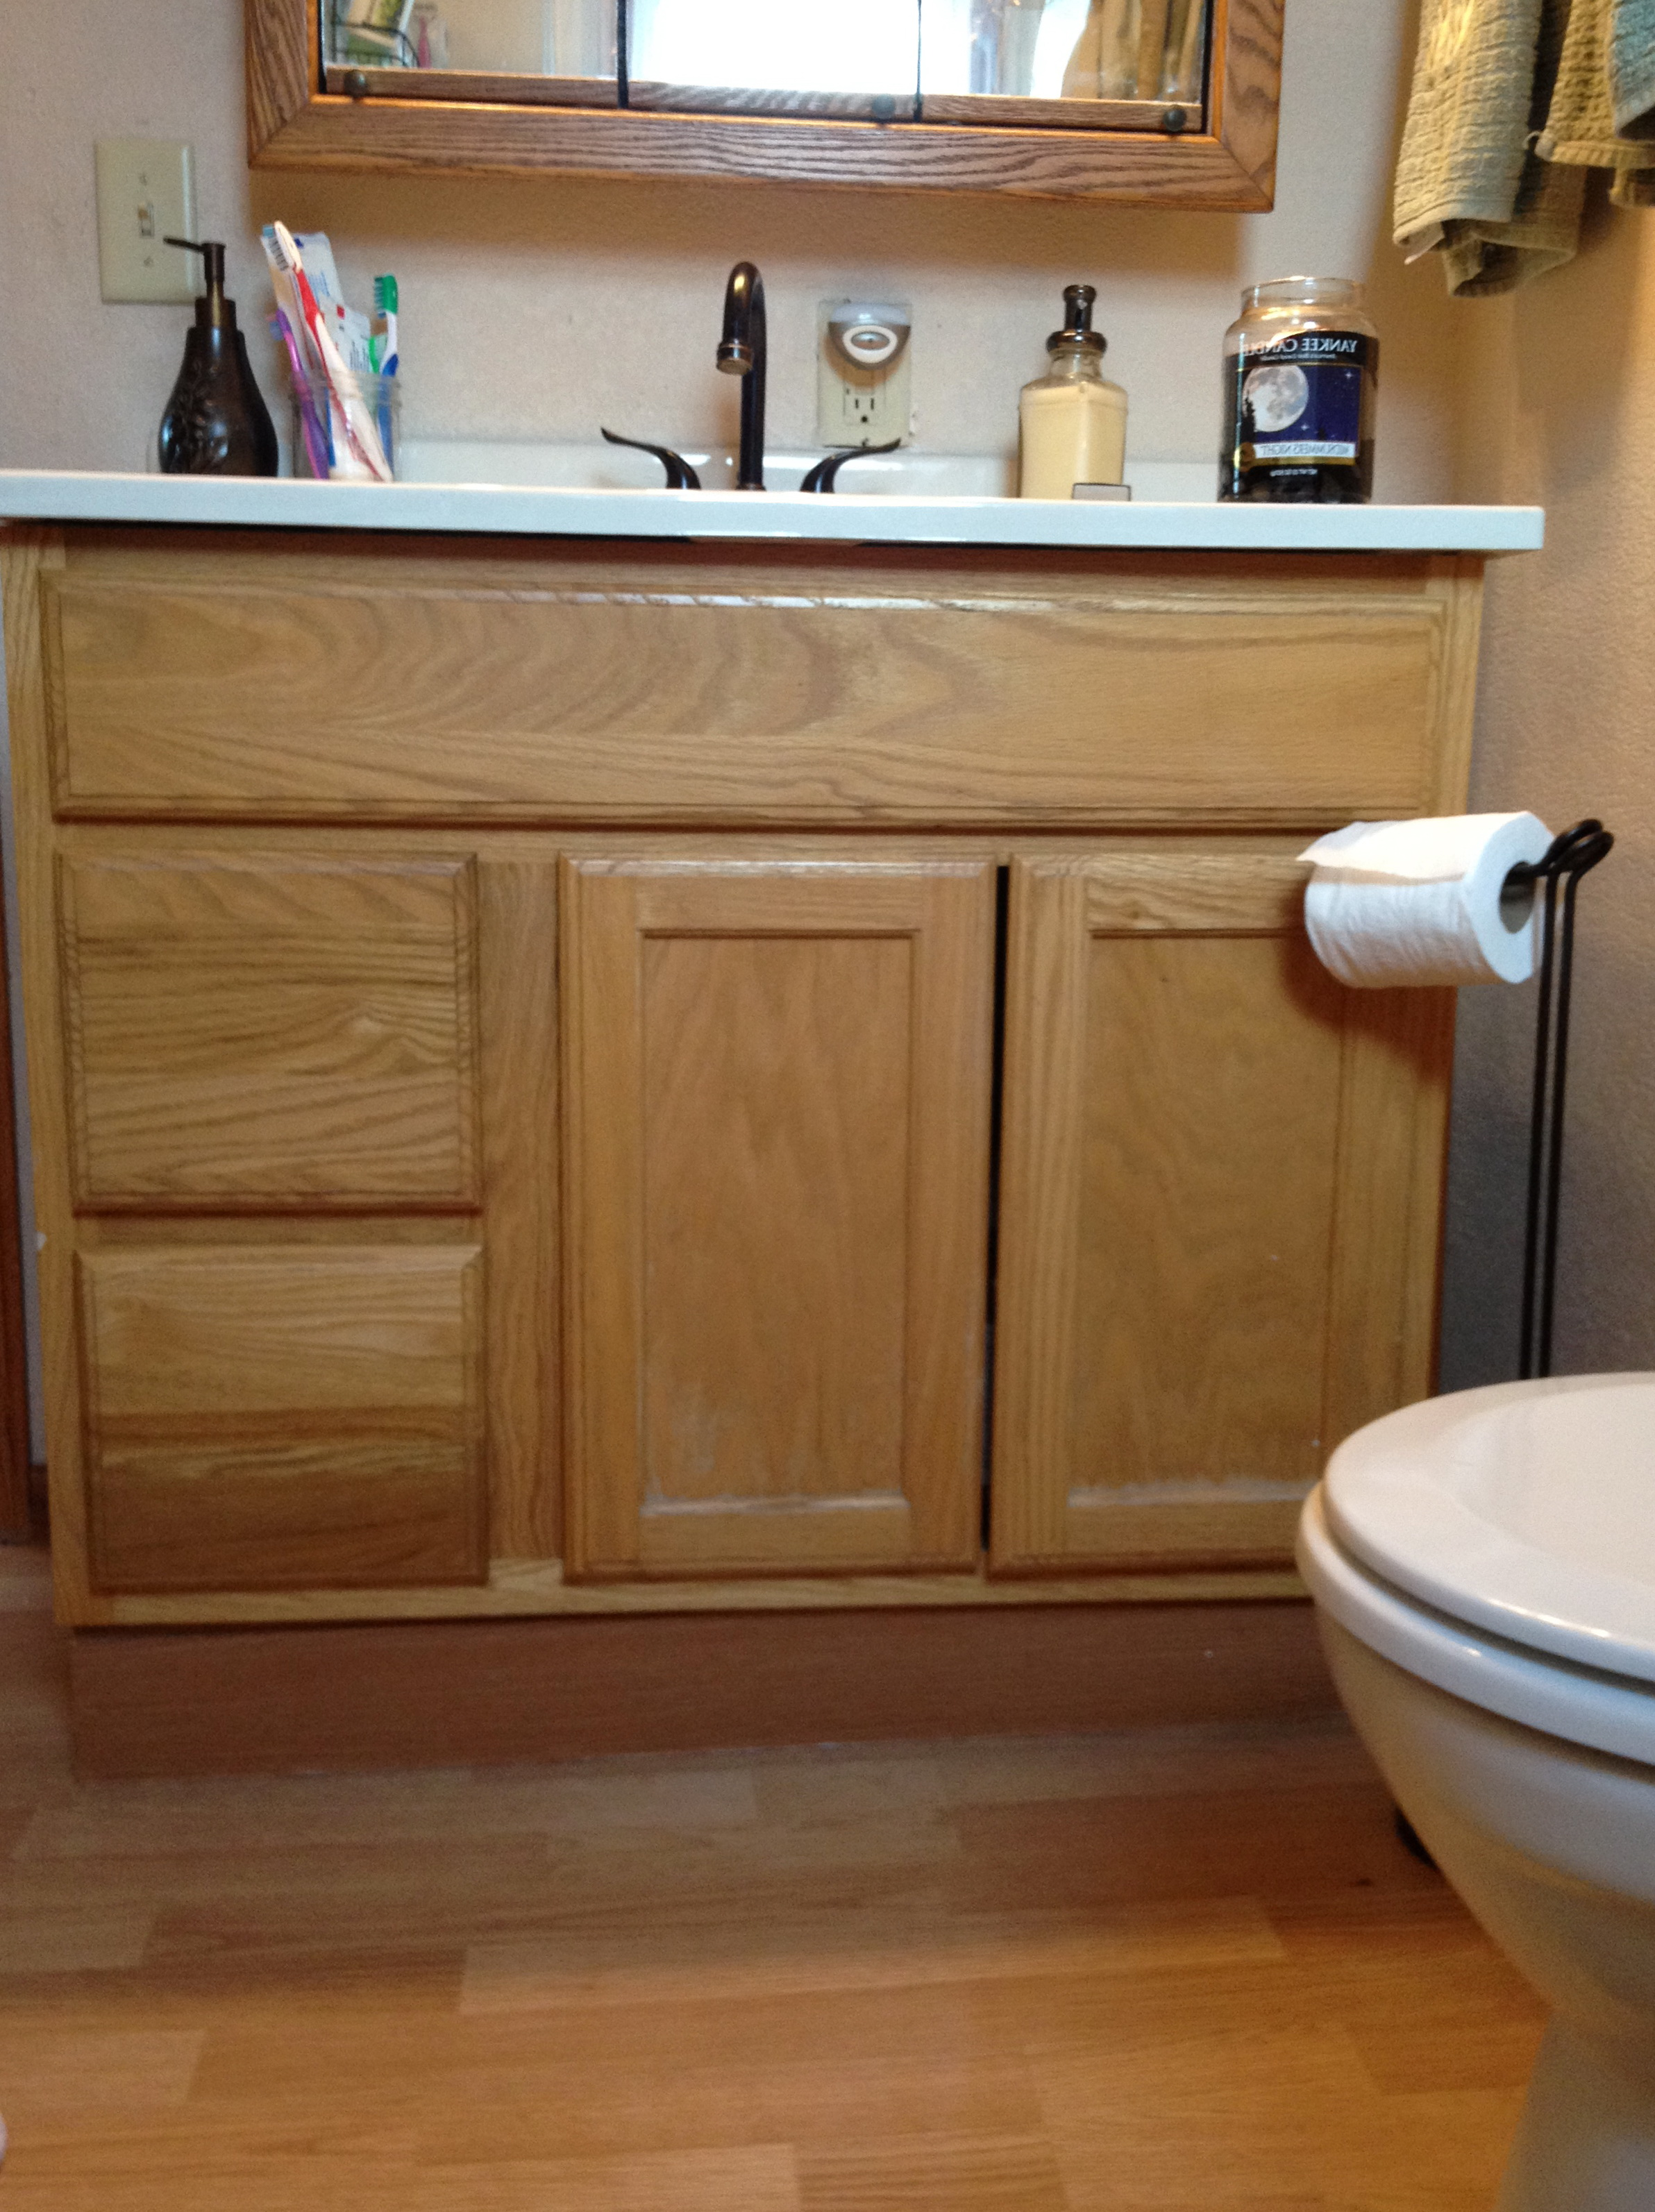 Used Bathroom Vanity Cabinets For Sale Home Design Ideas